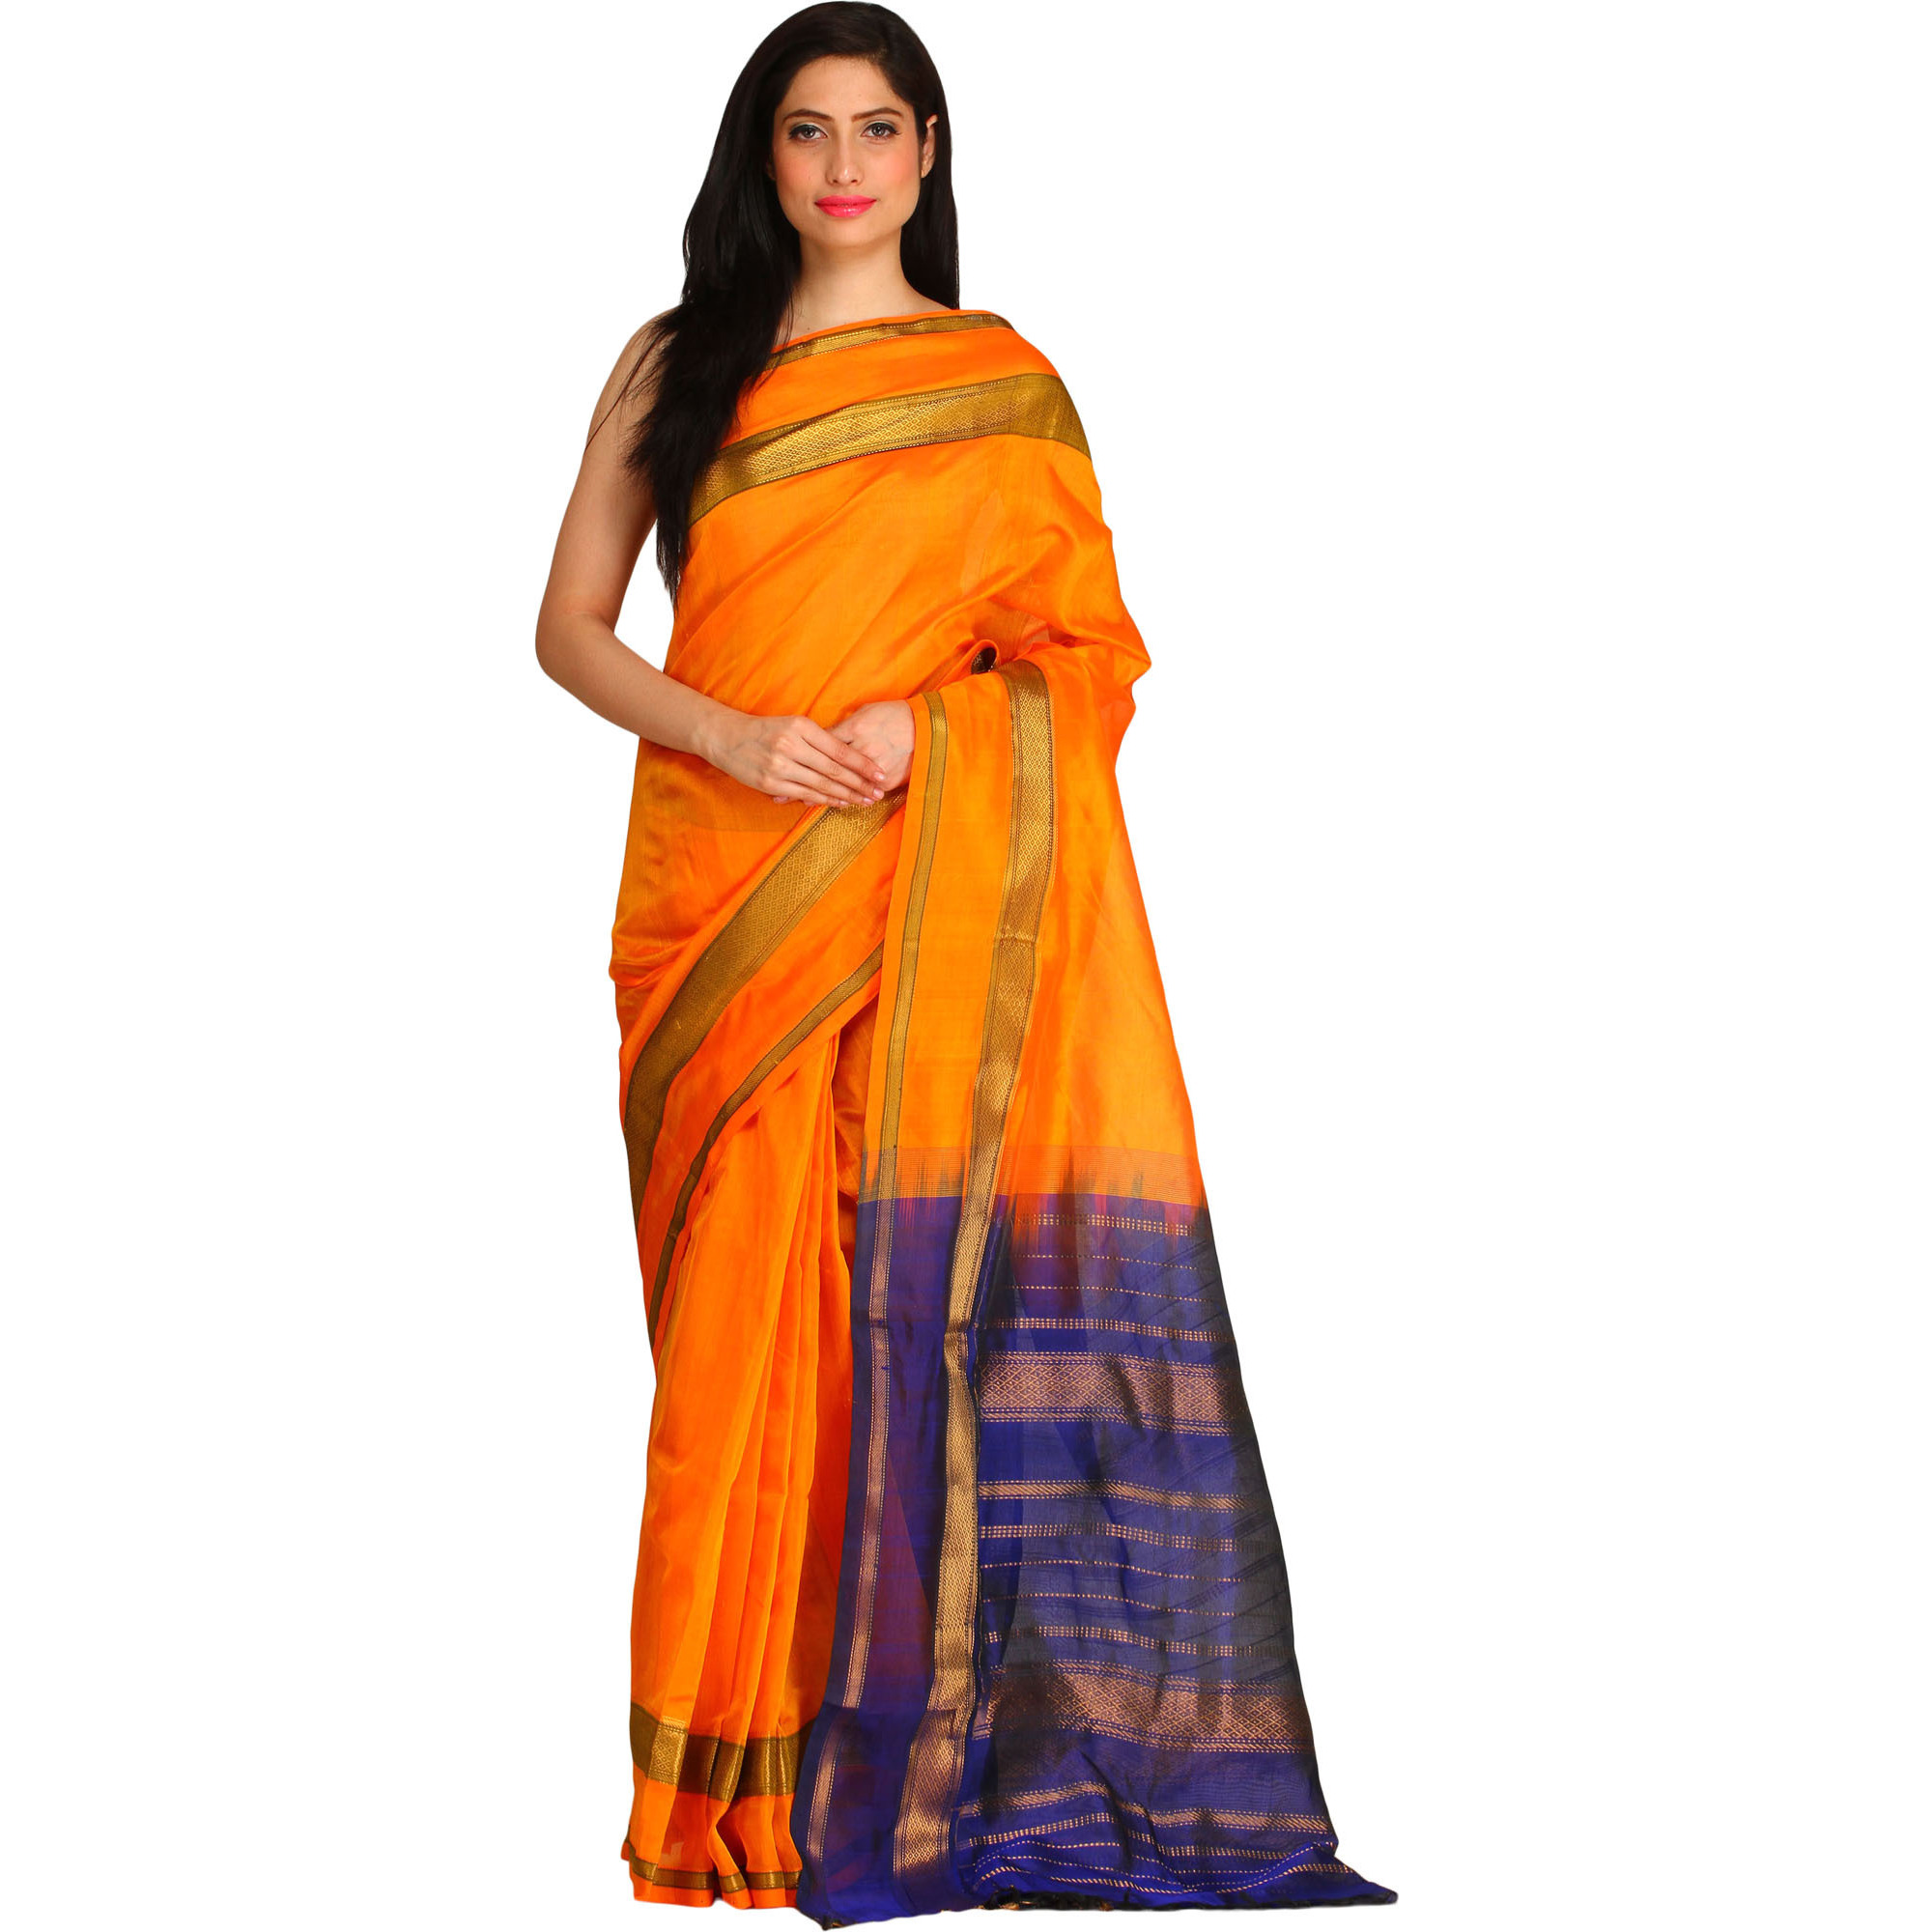 Bright-Marigold and Blue Sari from Chennai with Zari Weave on Pallu